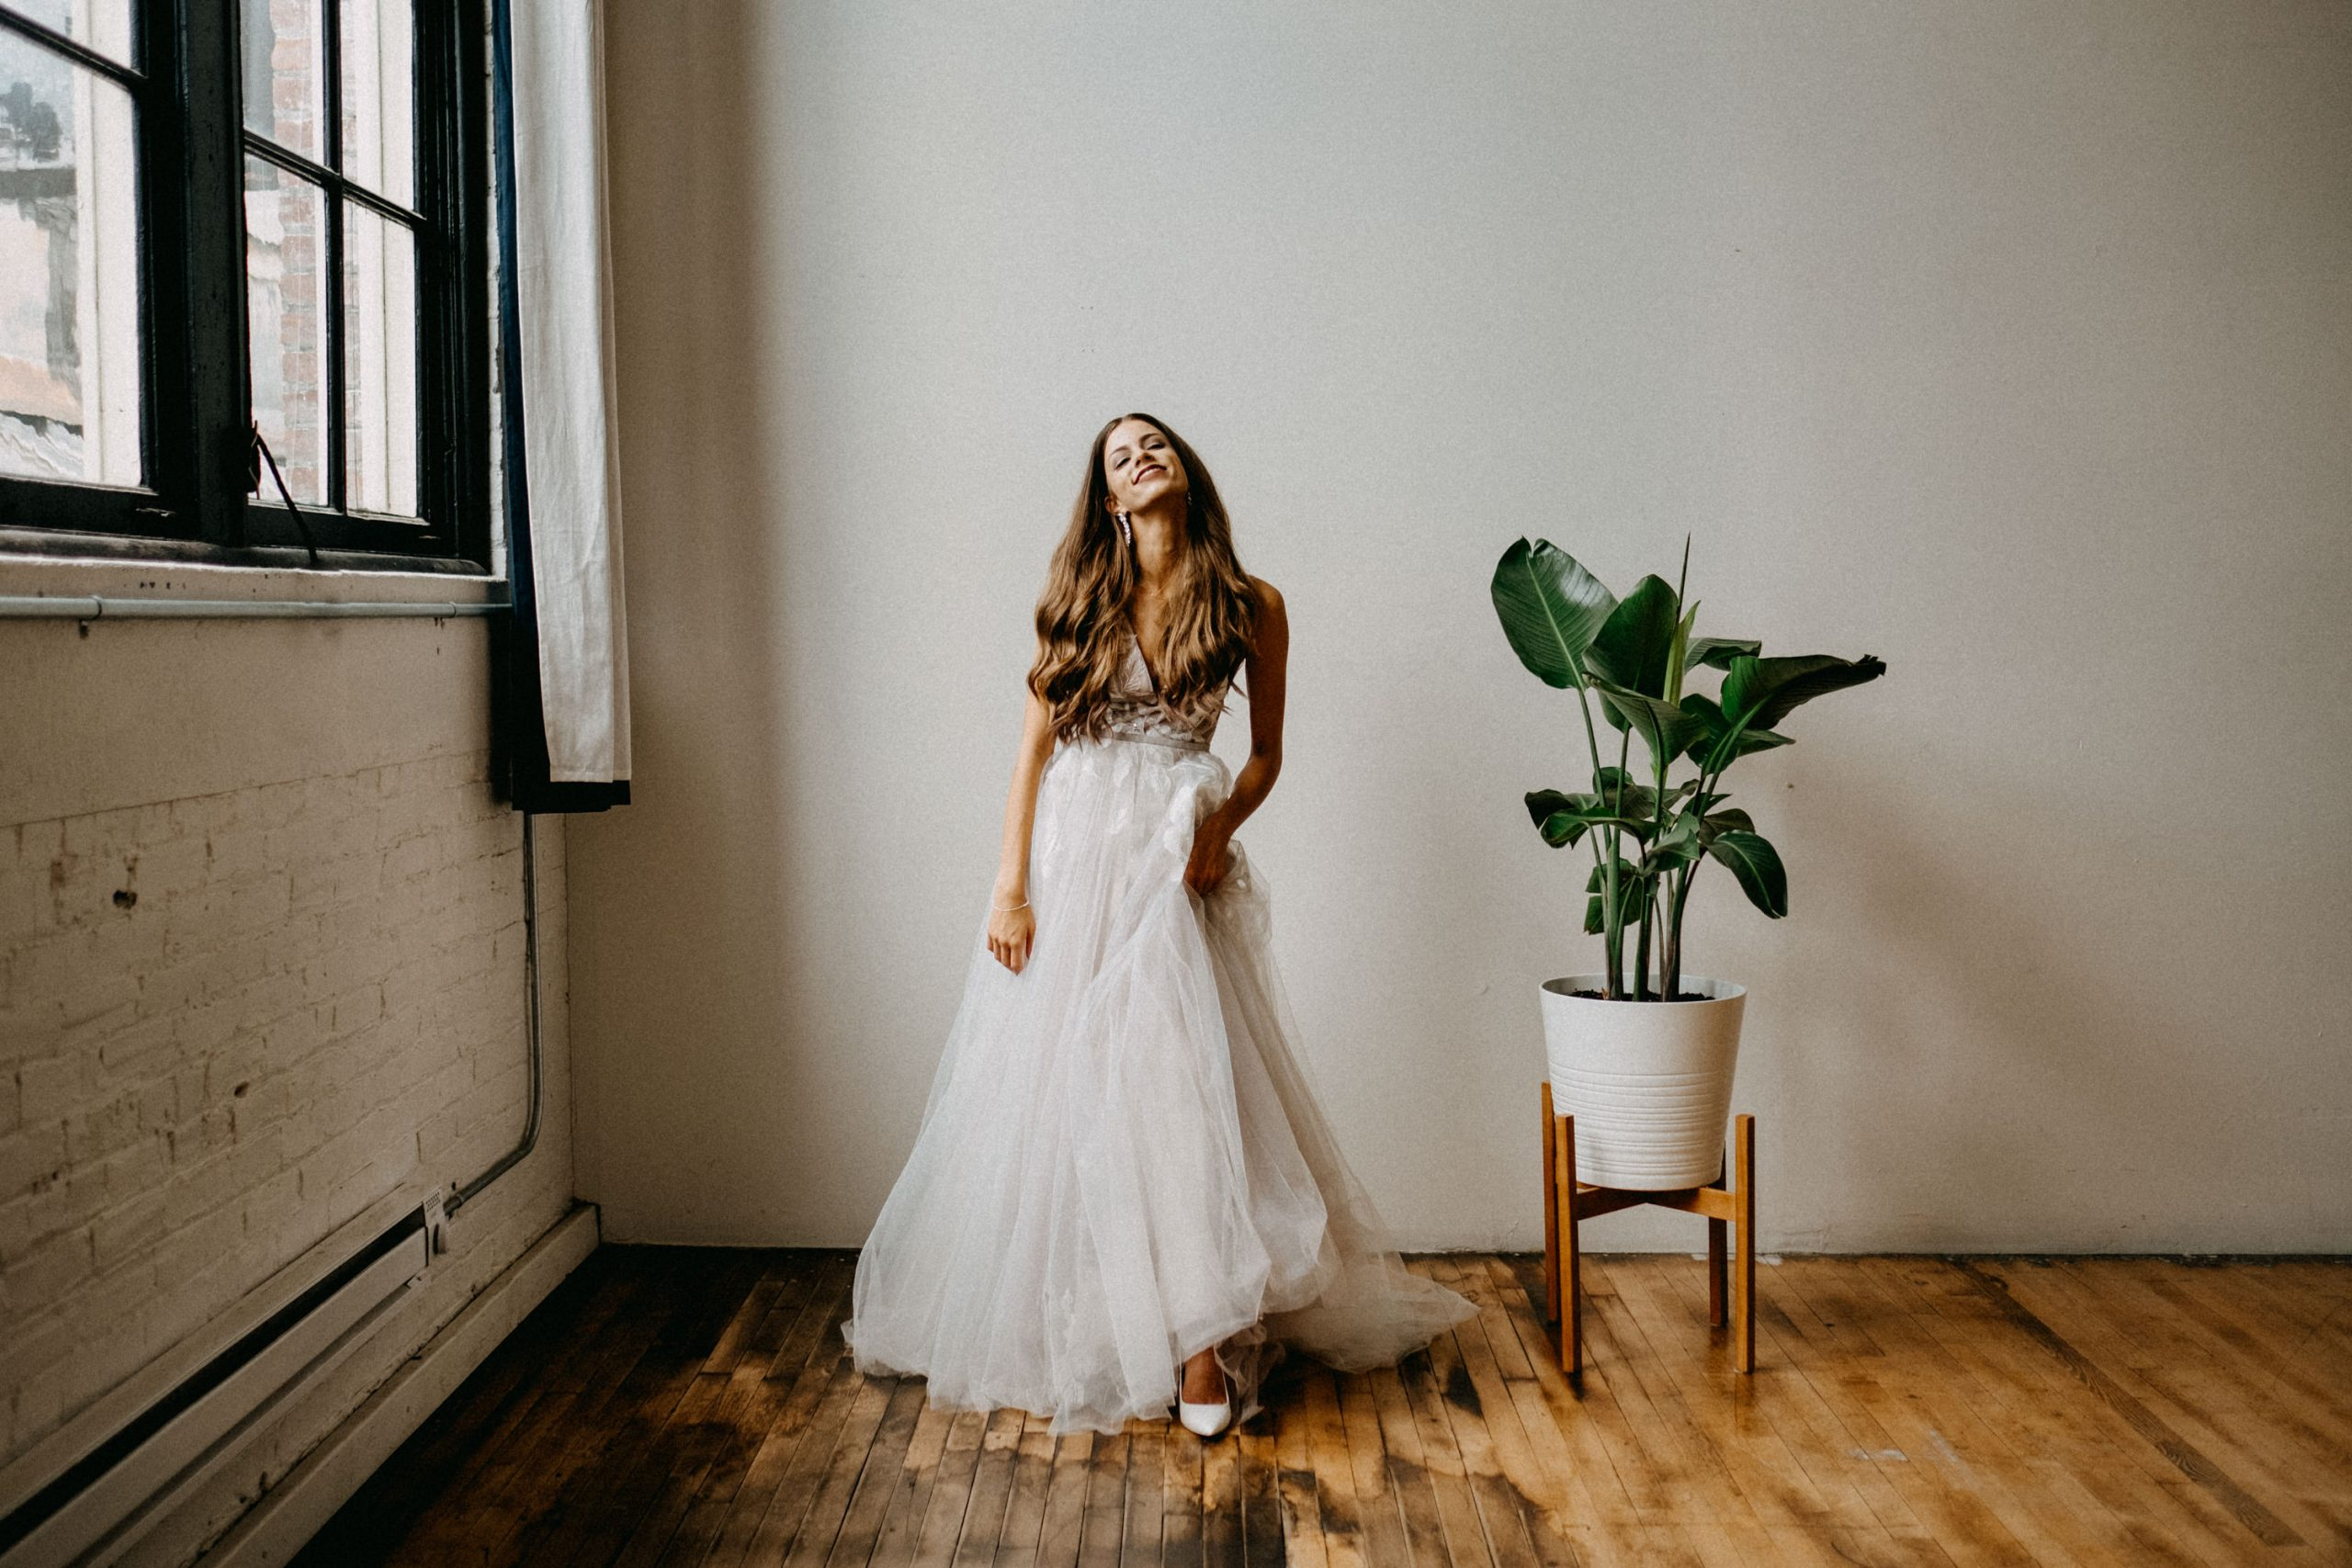 A portrait of a bride that stands between a window and a plant.